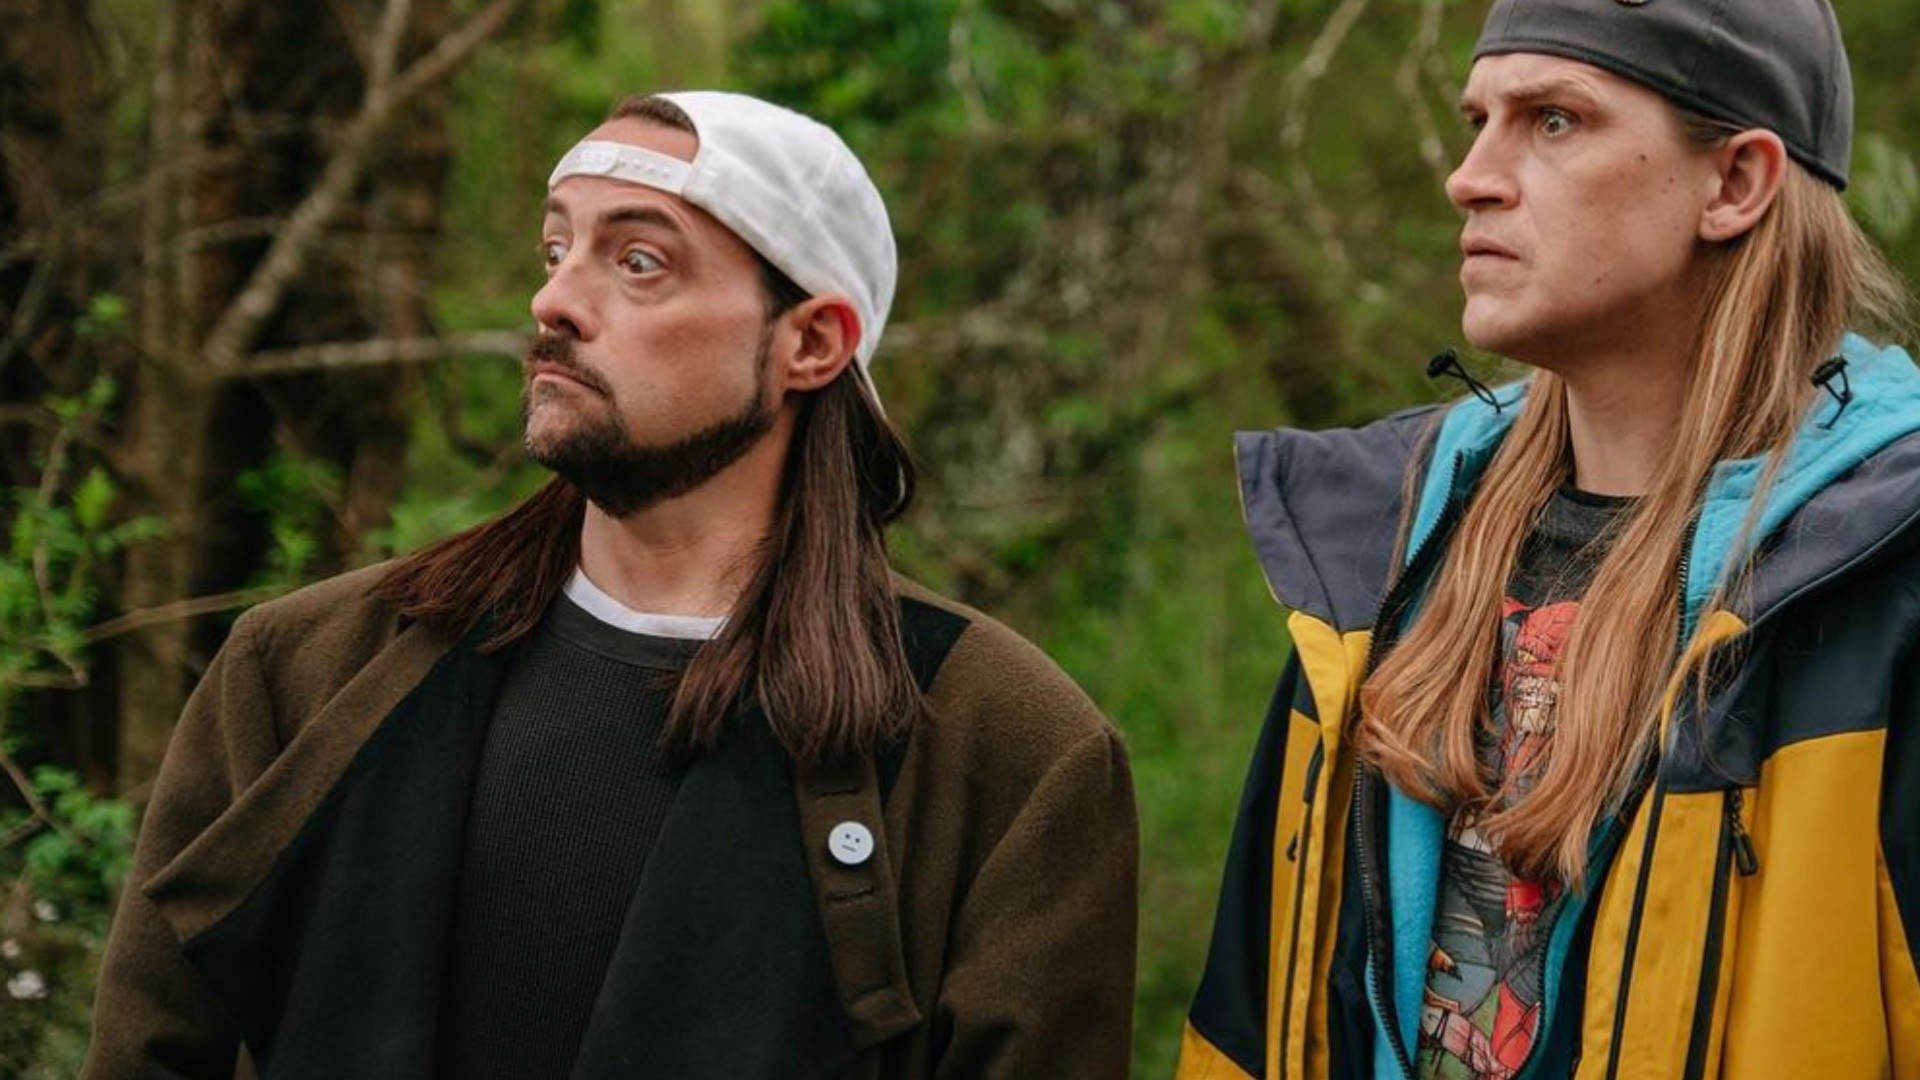 1920x1080 Kevin Smith Shares a First Look Photo From JAY AND SILENT BOB REBOOT —  GeekTyrant